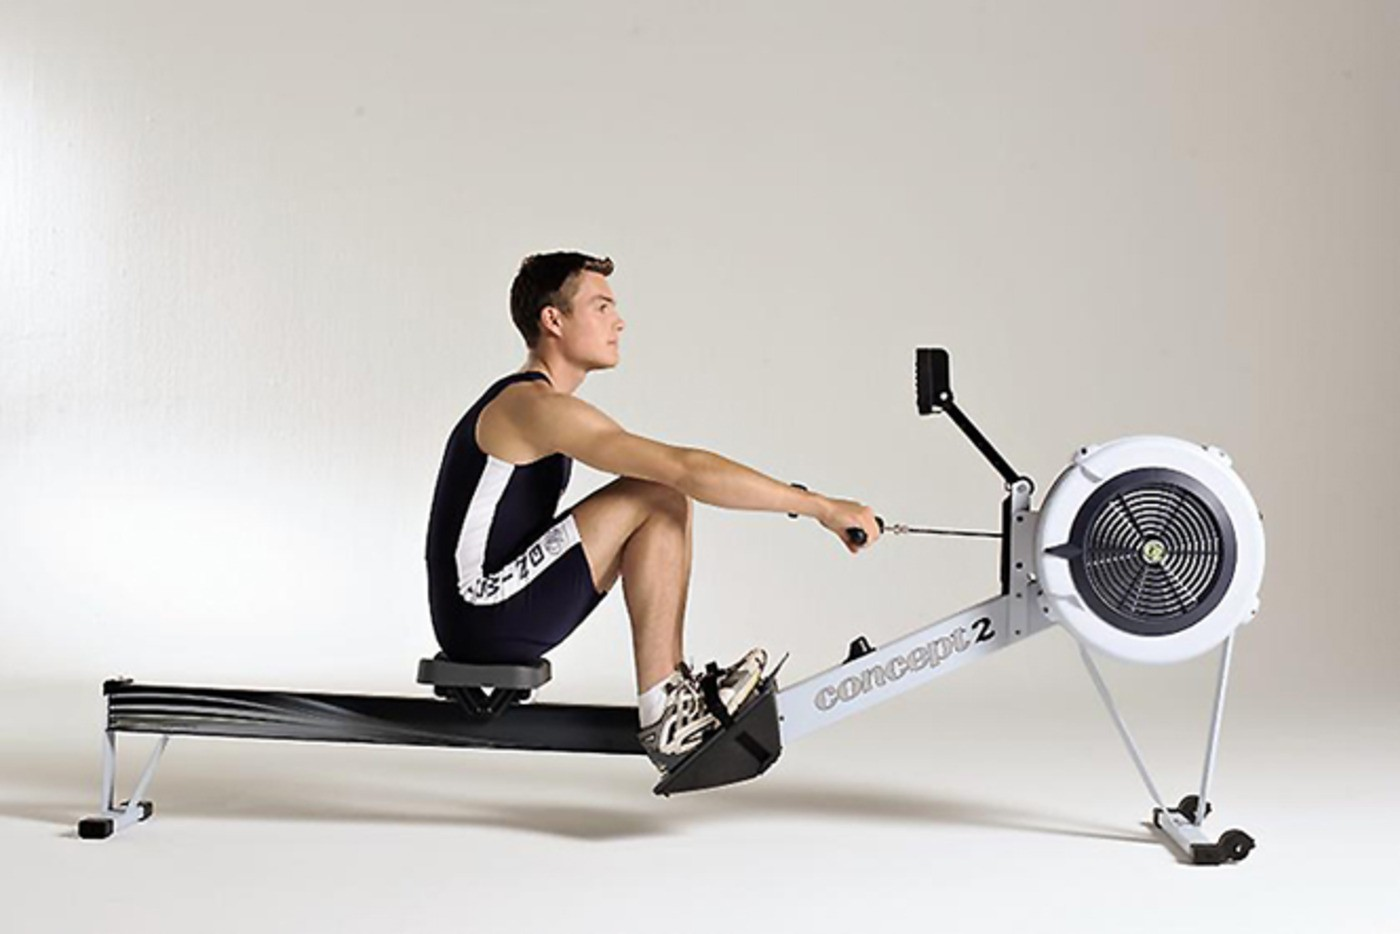 Best home gyms for the price, rowing machine technique